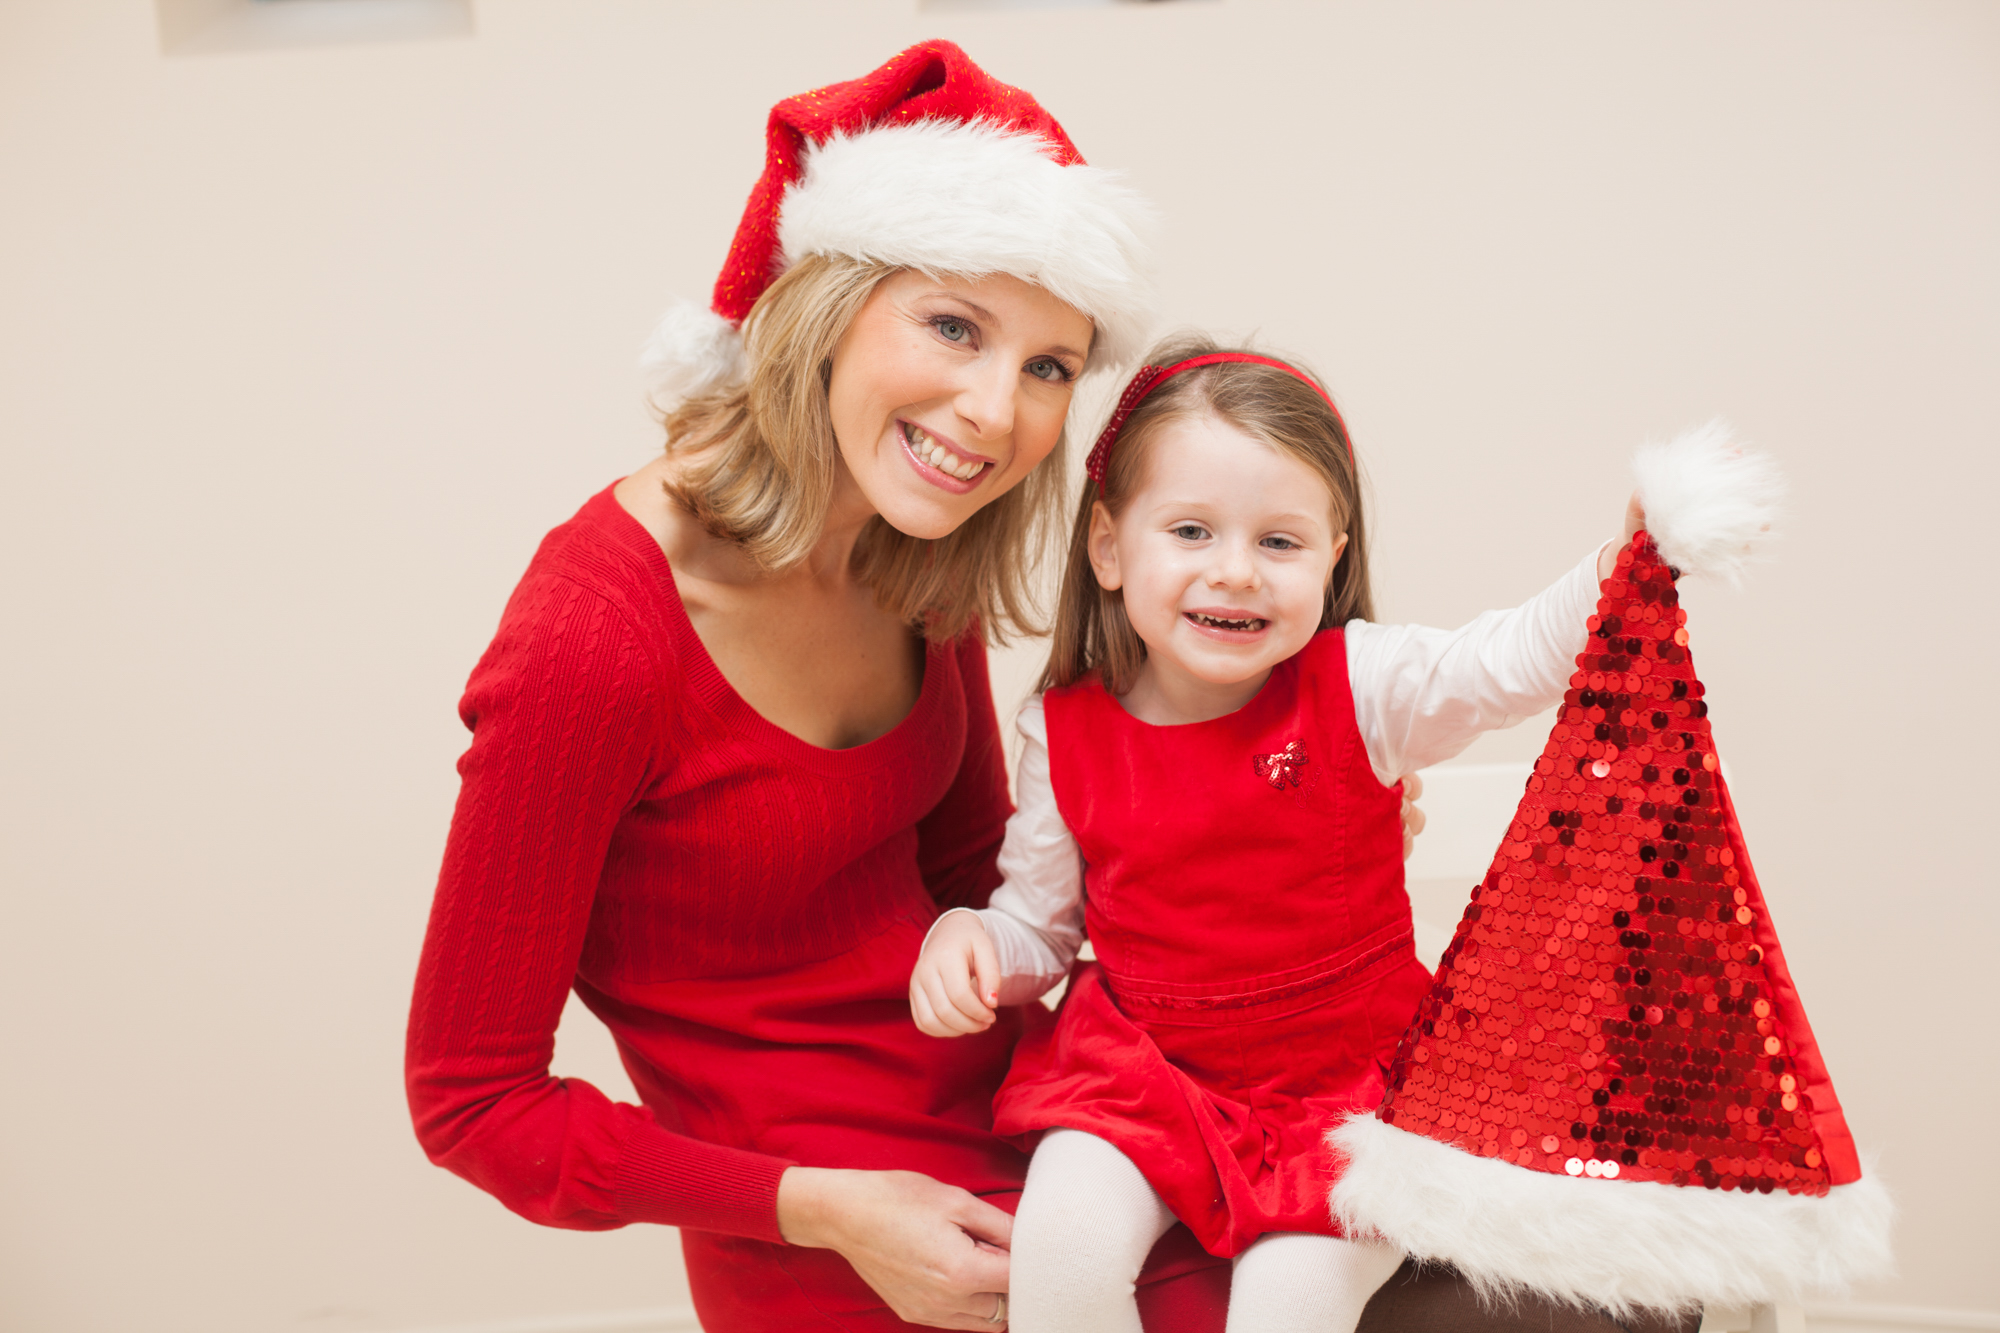 Lucy and her mum Laura Haugh launch MummyPages #SantaSelfie campaign